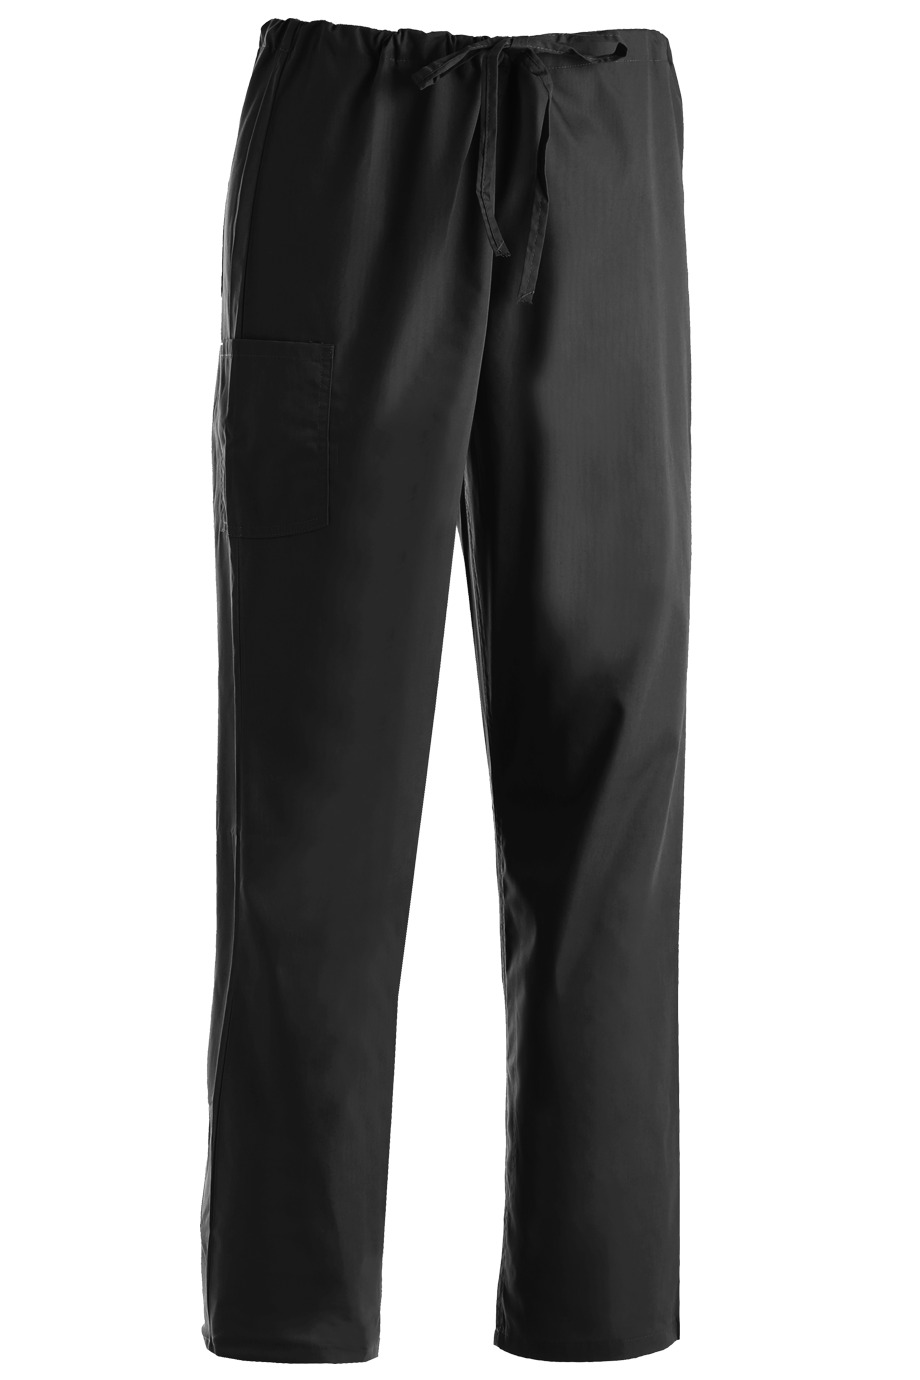 Edwards Garment 2889 - Housekeeping Pant